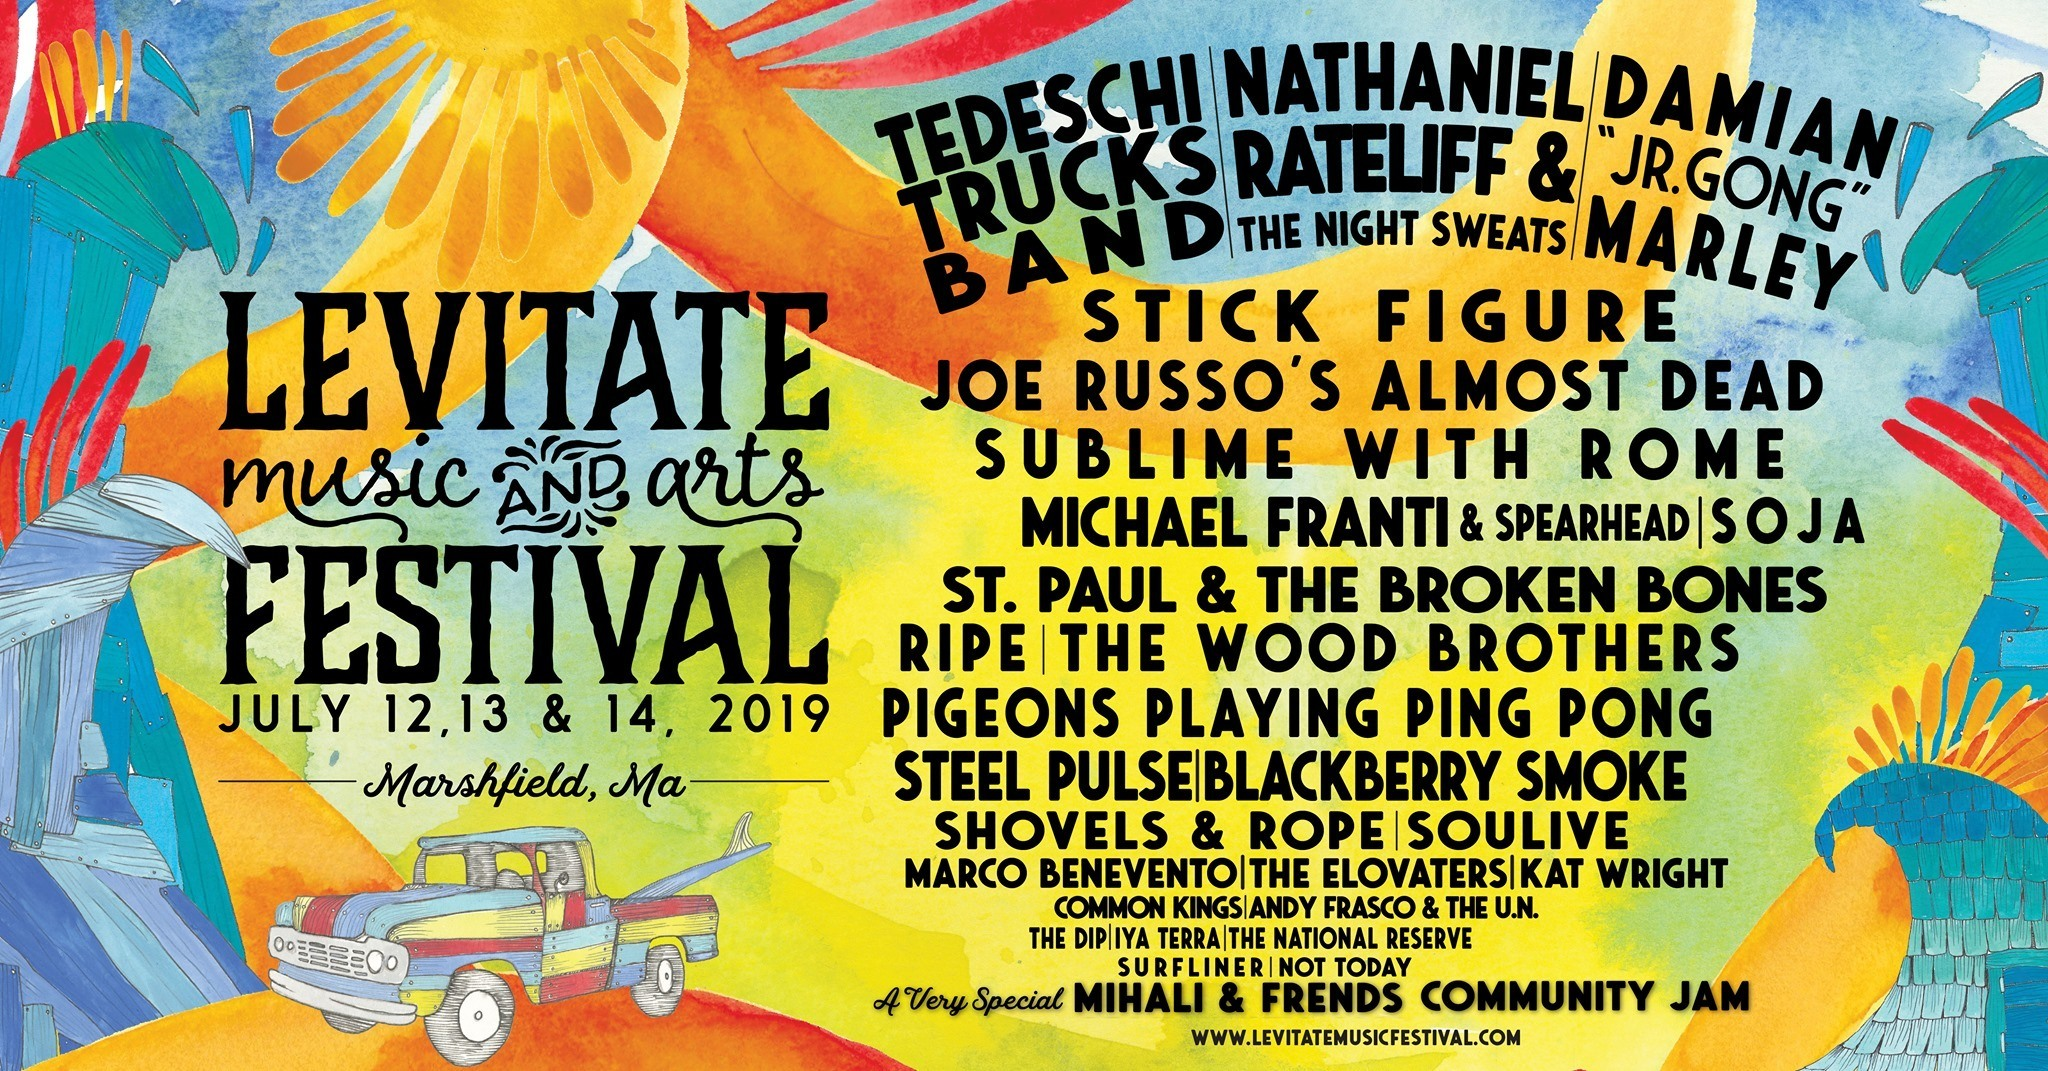 Levitate Music Festivals Boston and Massachusetts